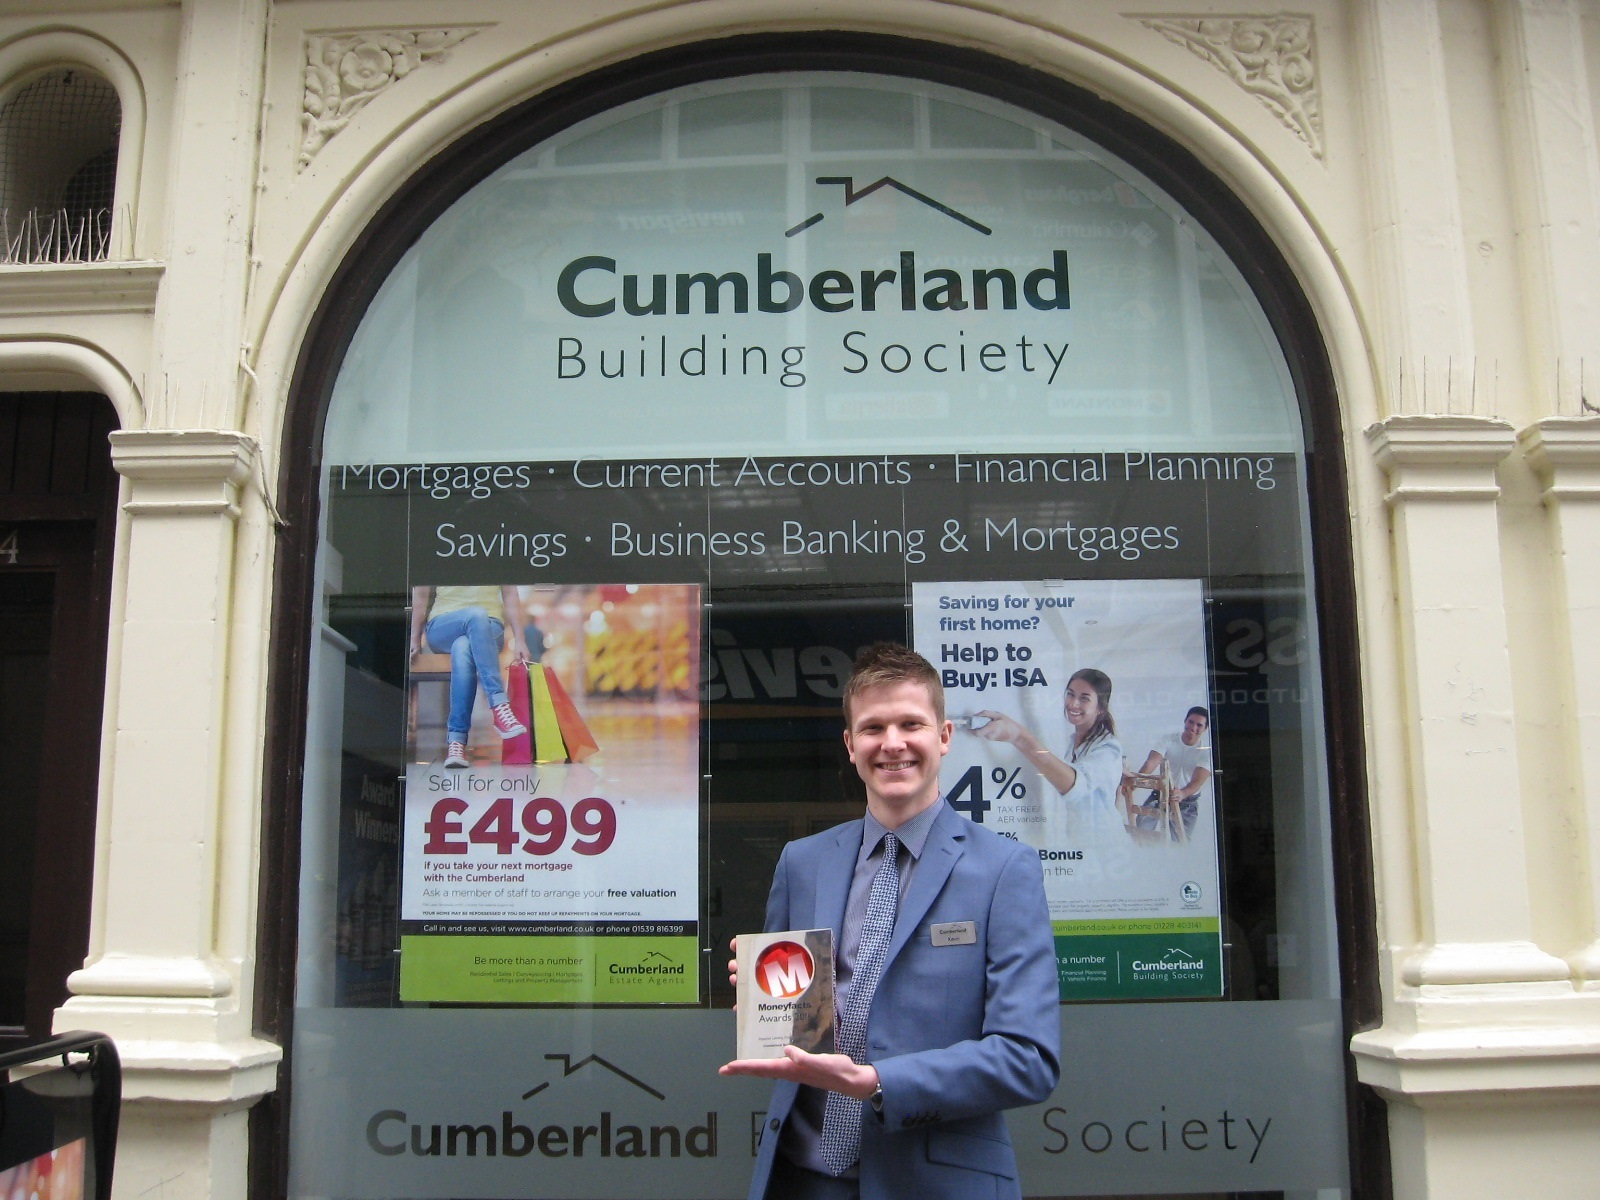 Kevin Aitken, branch manager at Cumberland Building Society with the Moneyfacts award